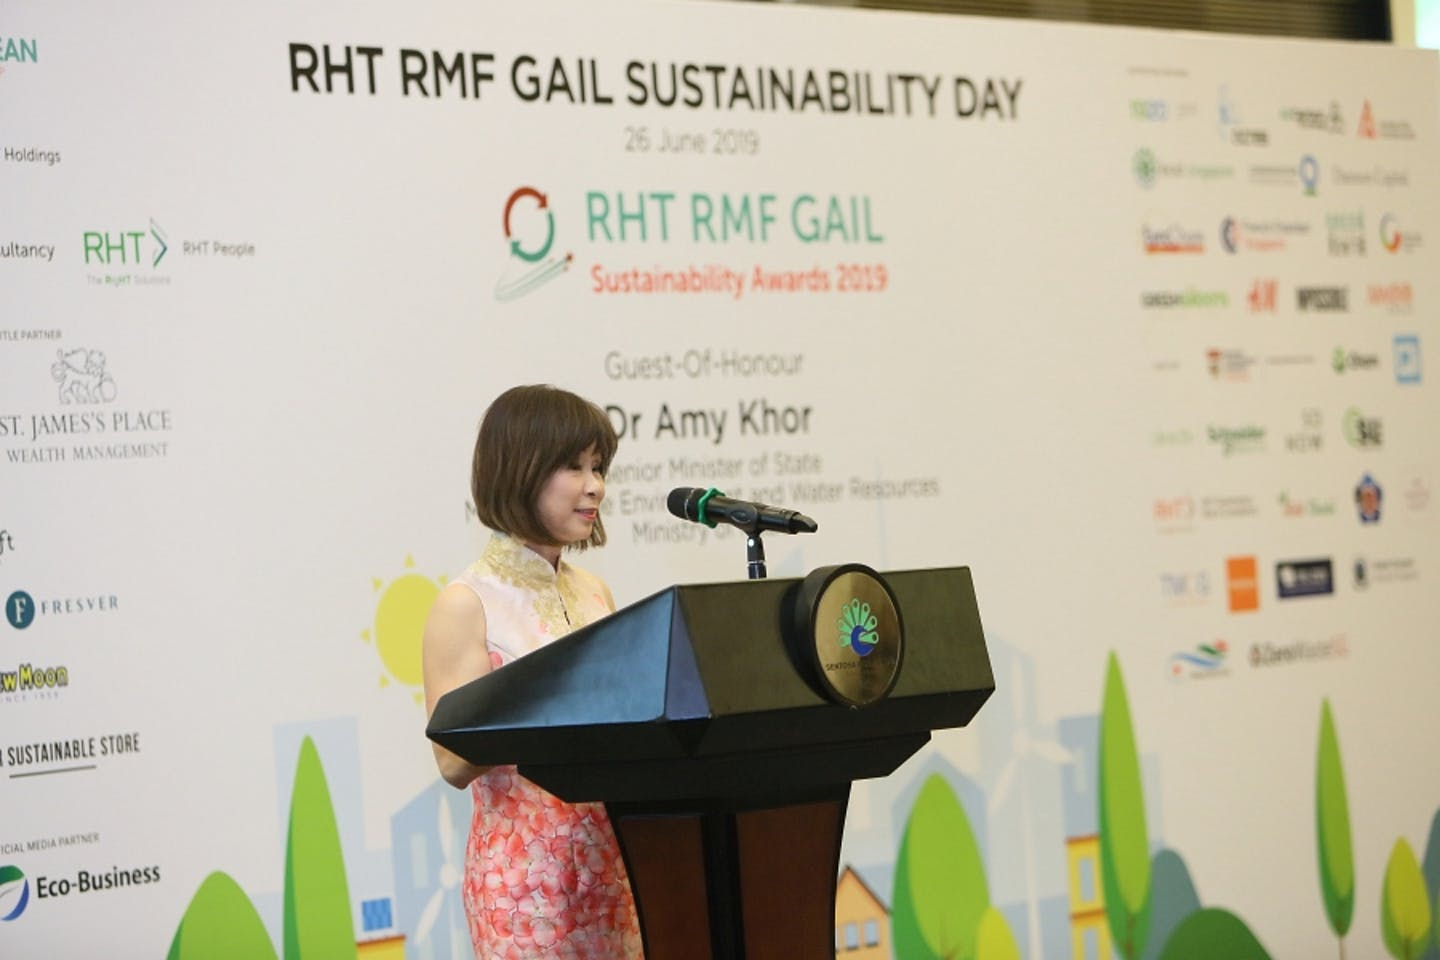 RHT Rajan Menon Foundation's inaugural GAIL Sustainability Day brings over 250 individuals and organisations to embrace sustainability